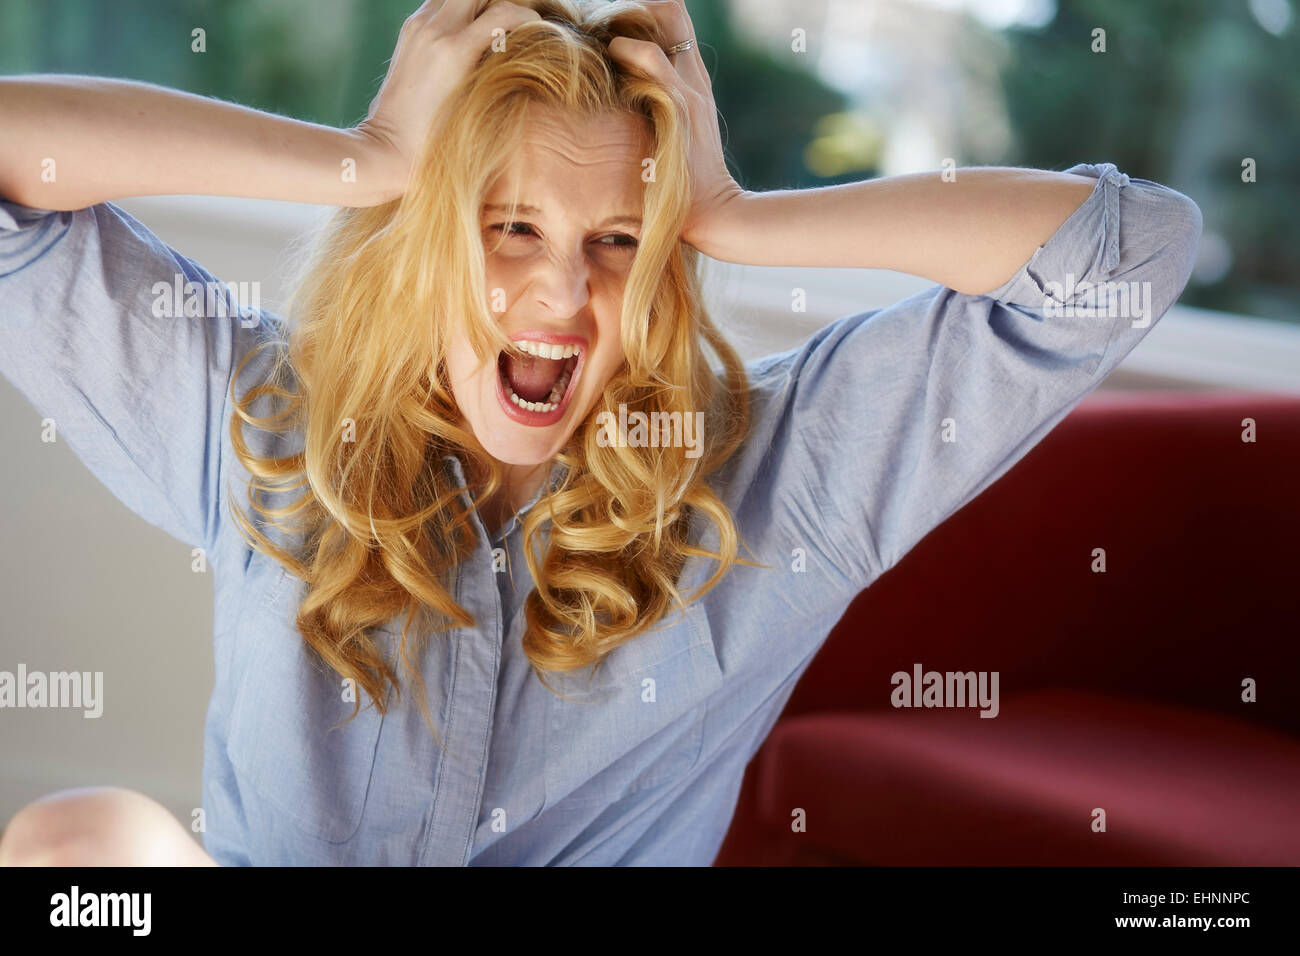 Woman screaming - Stock Image